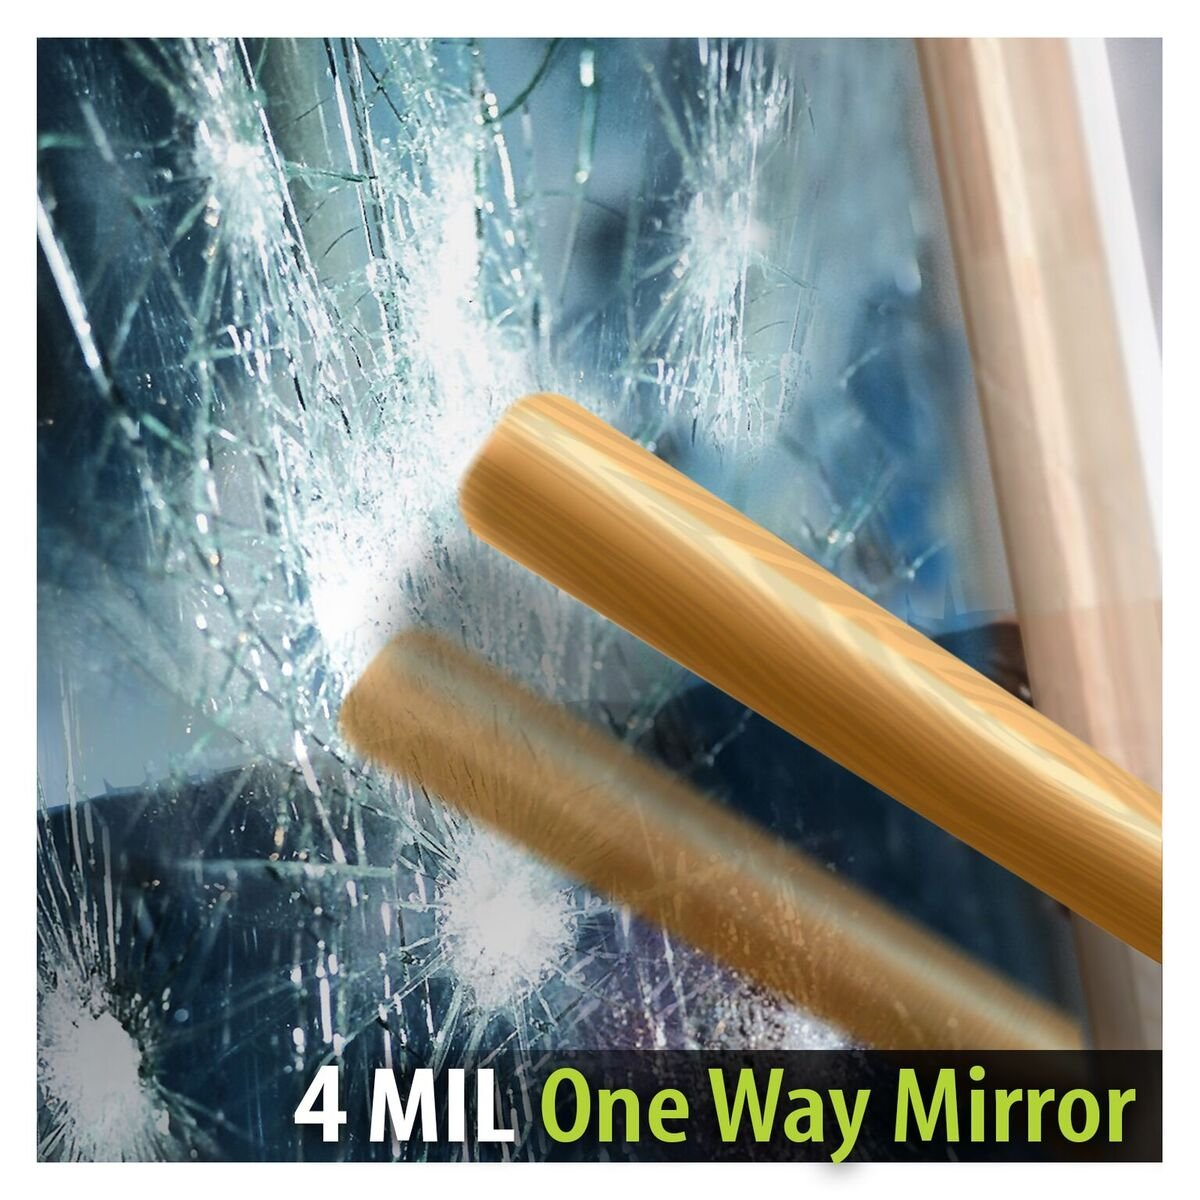 BDF S4MS15 Window Film Security and One Way Mirror Silver 4 Mil (30in X 50ft) by Buydecorativefilm (Image #1)